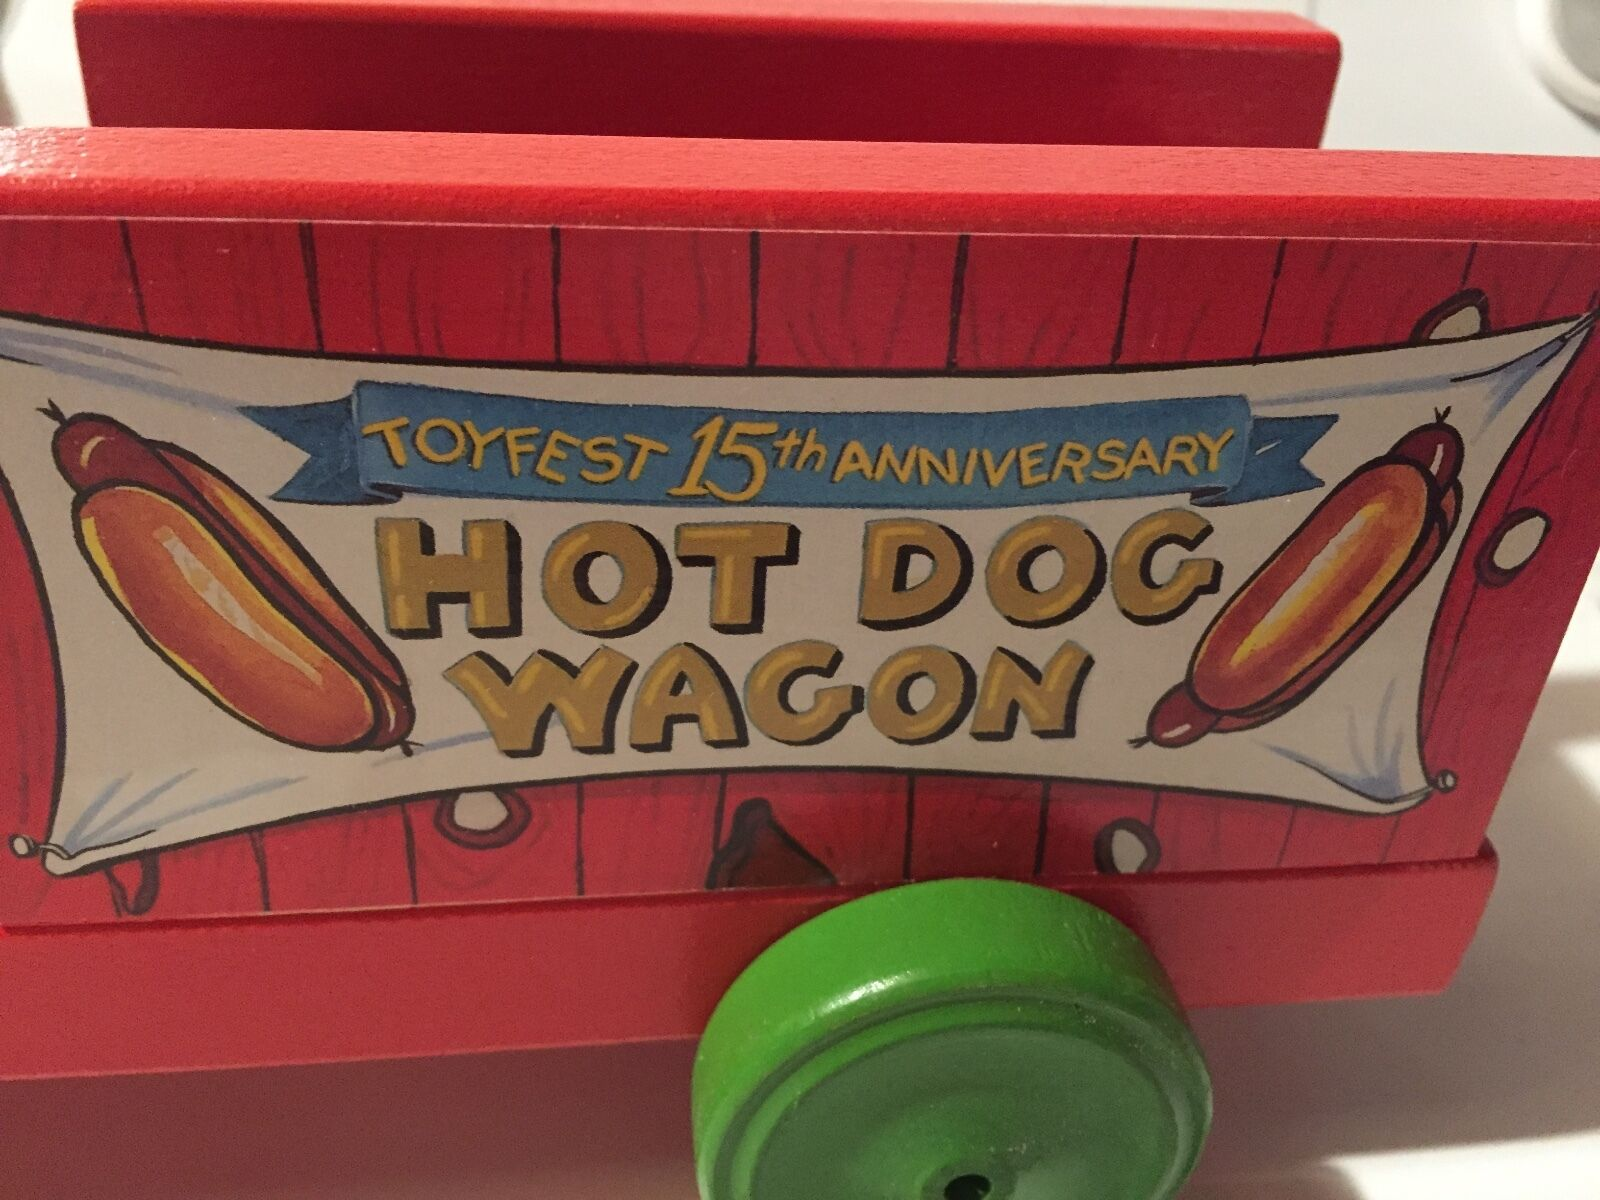 Hot Dog Wagon Toy Fest 2001 Fisher Price Commemorative Toy